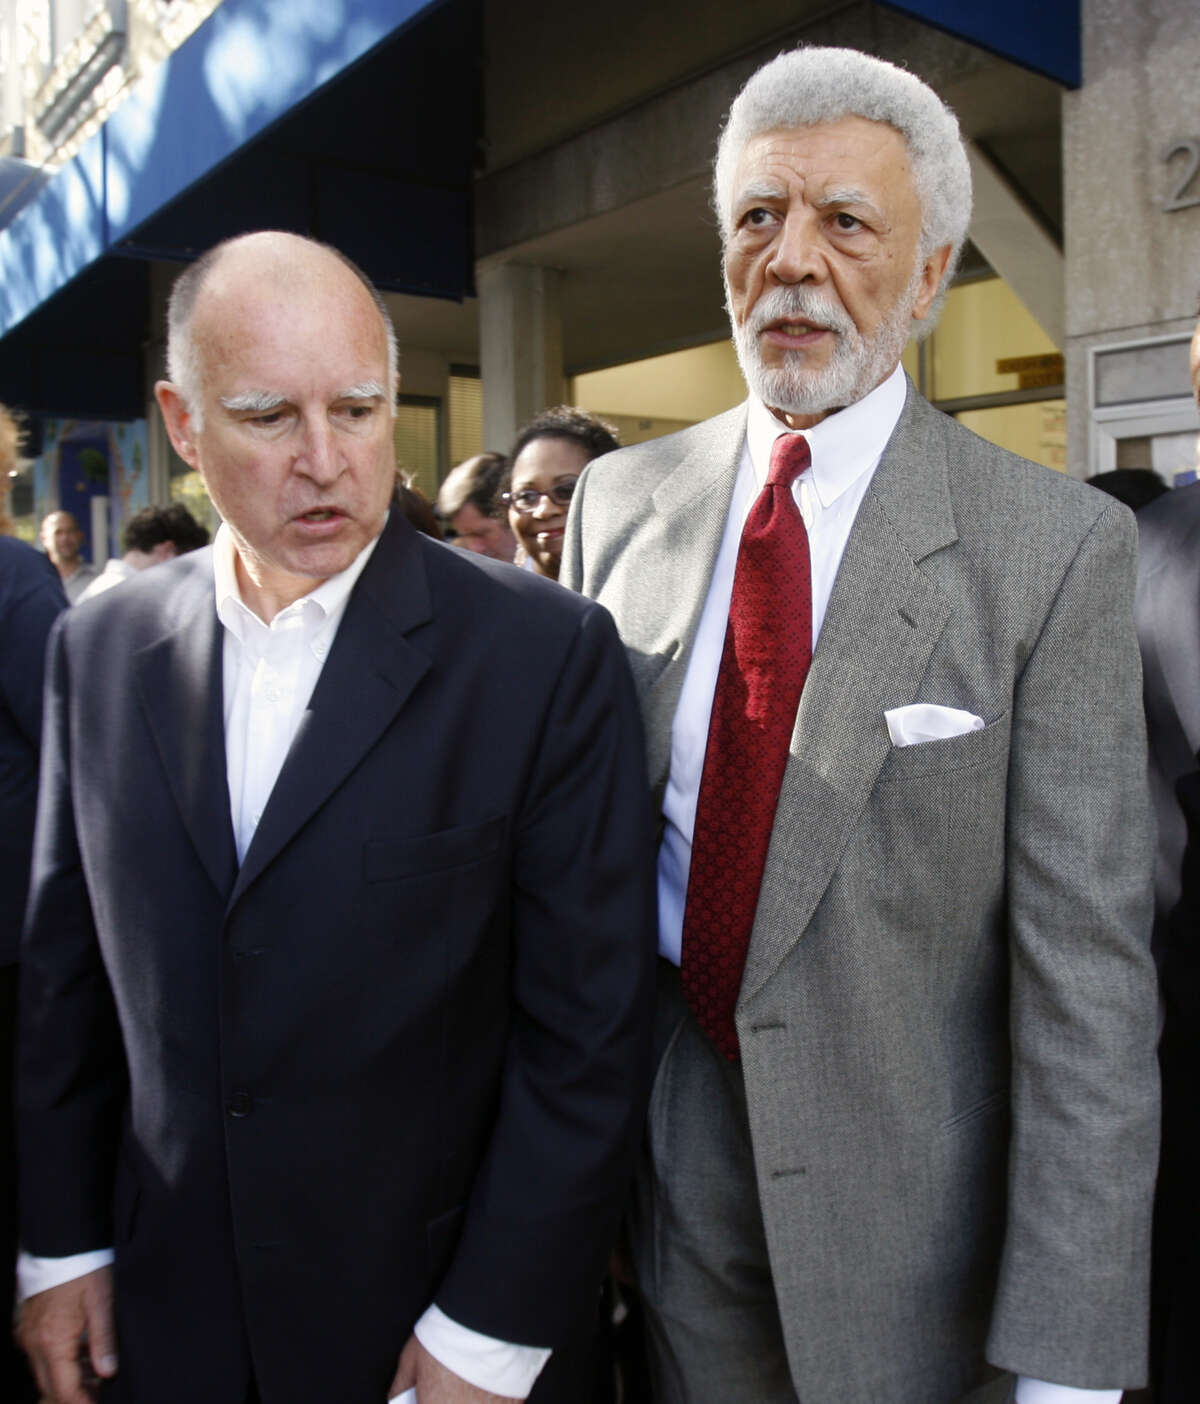 Outgoing Oakland Mayor, and state Attorney General-elect, Jerry Brown (left), walks with Oakland Mayor-elect Ron Dellums after a Democratic Party victory rally in Oakland, Calif. on Wednesday, Nov. 8, 2006.